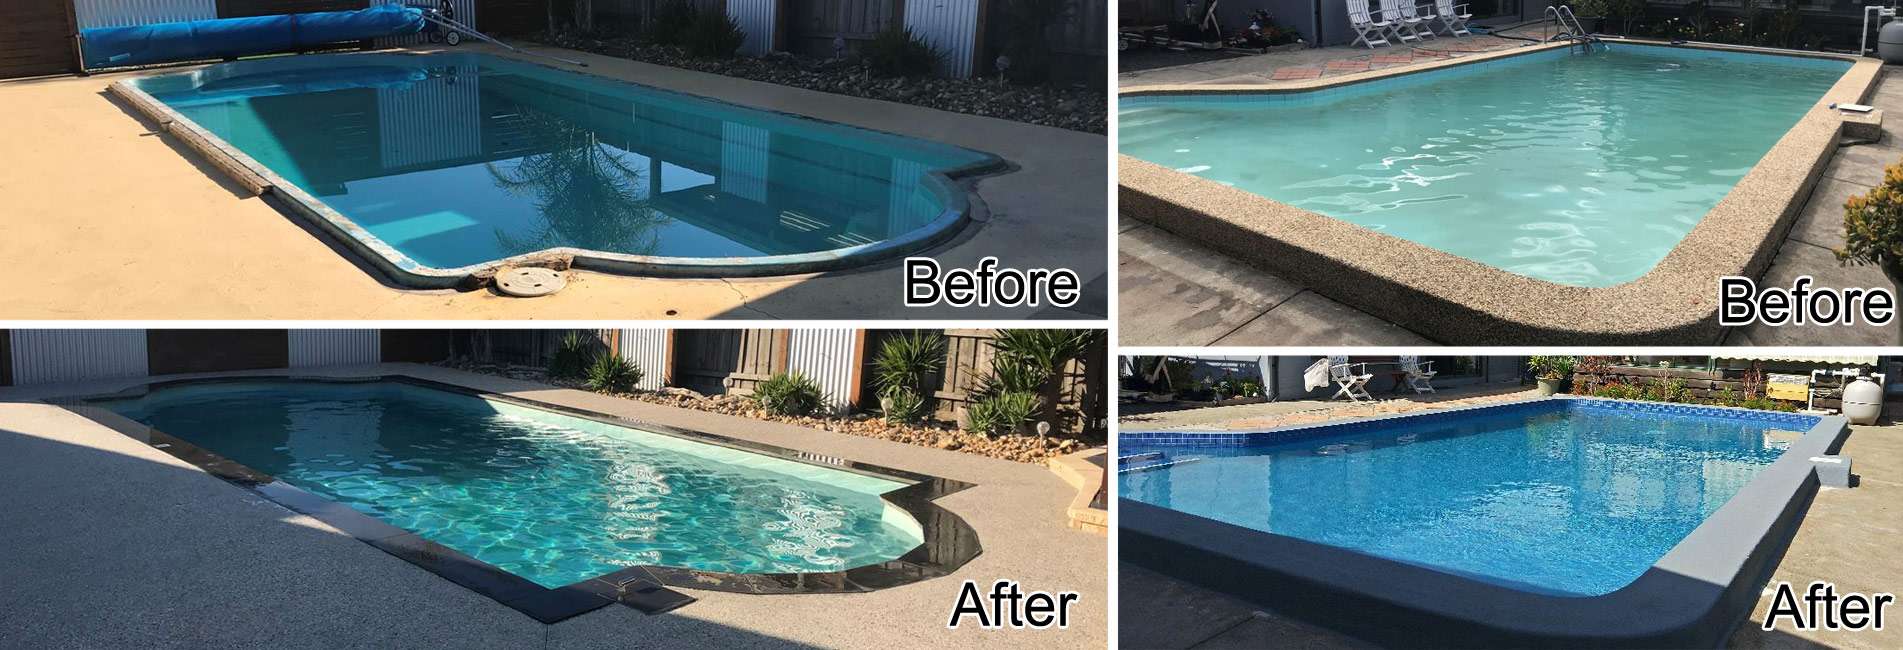 Pool Renovations Seaford, Pool Repairs Melbourne, Pool Paving Cranbourne, Pool Services Narre Warren